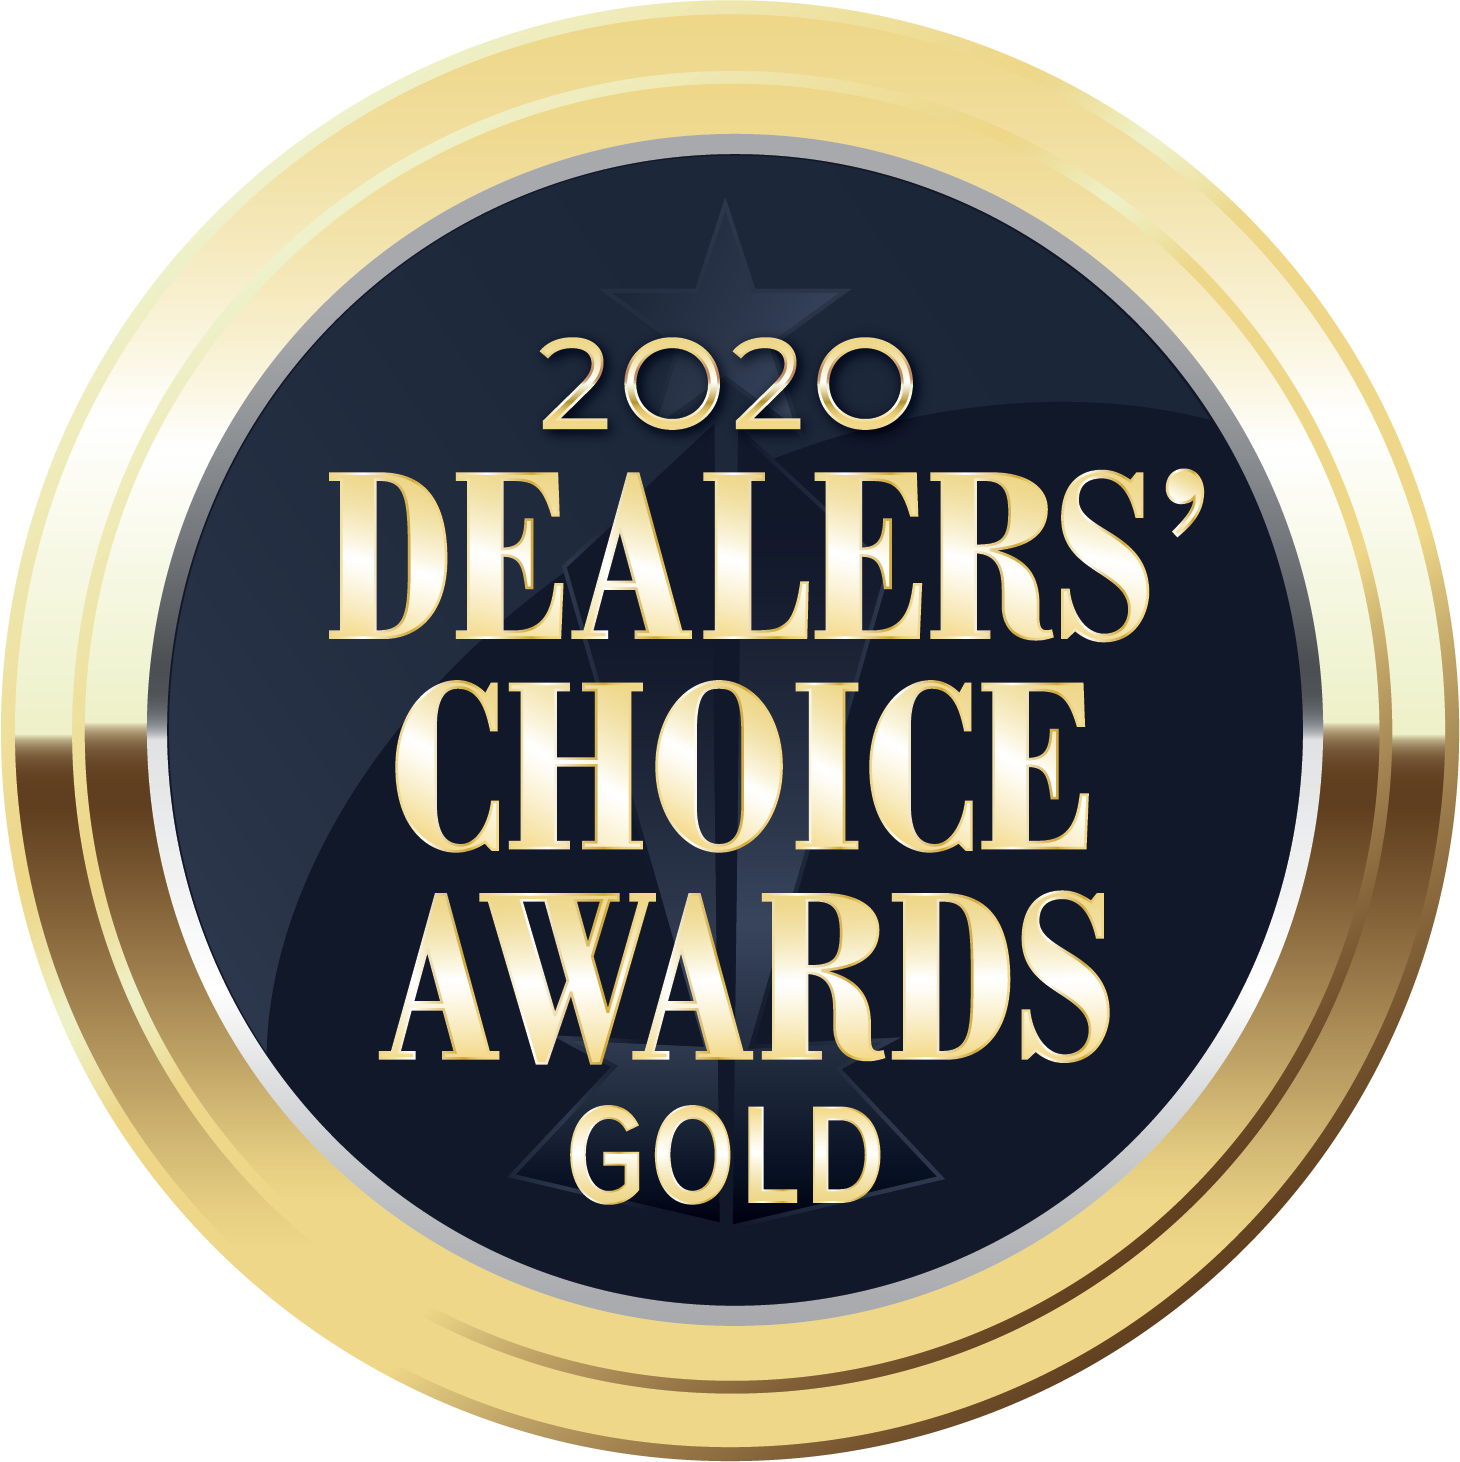 Dealers' Choice - Gold 2020